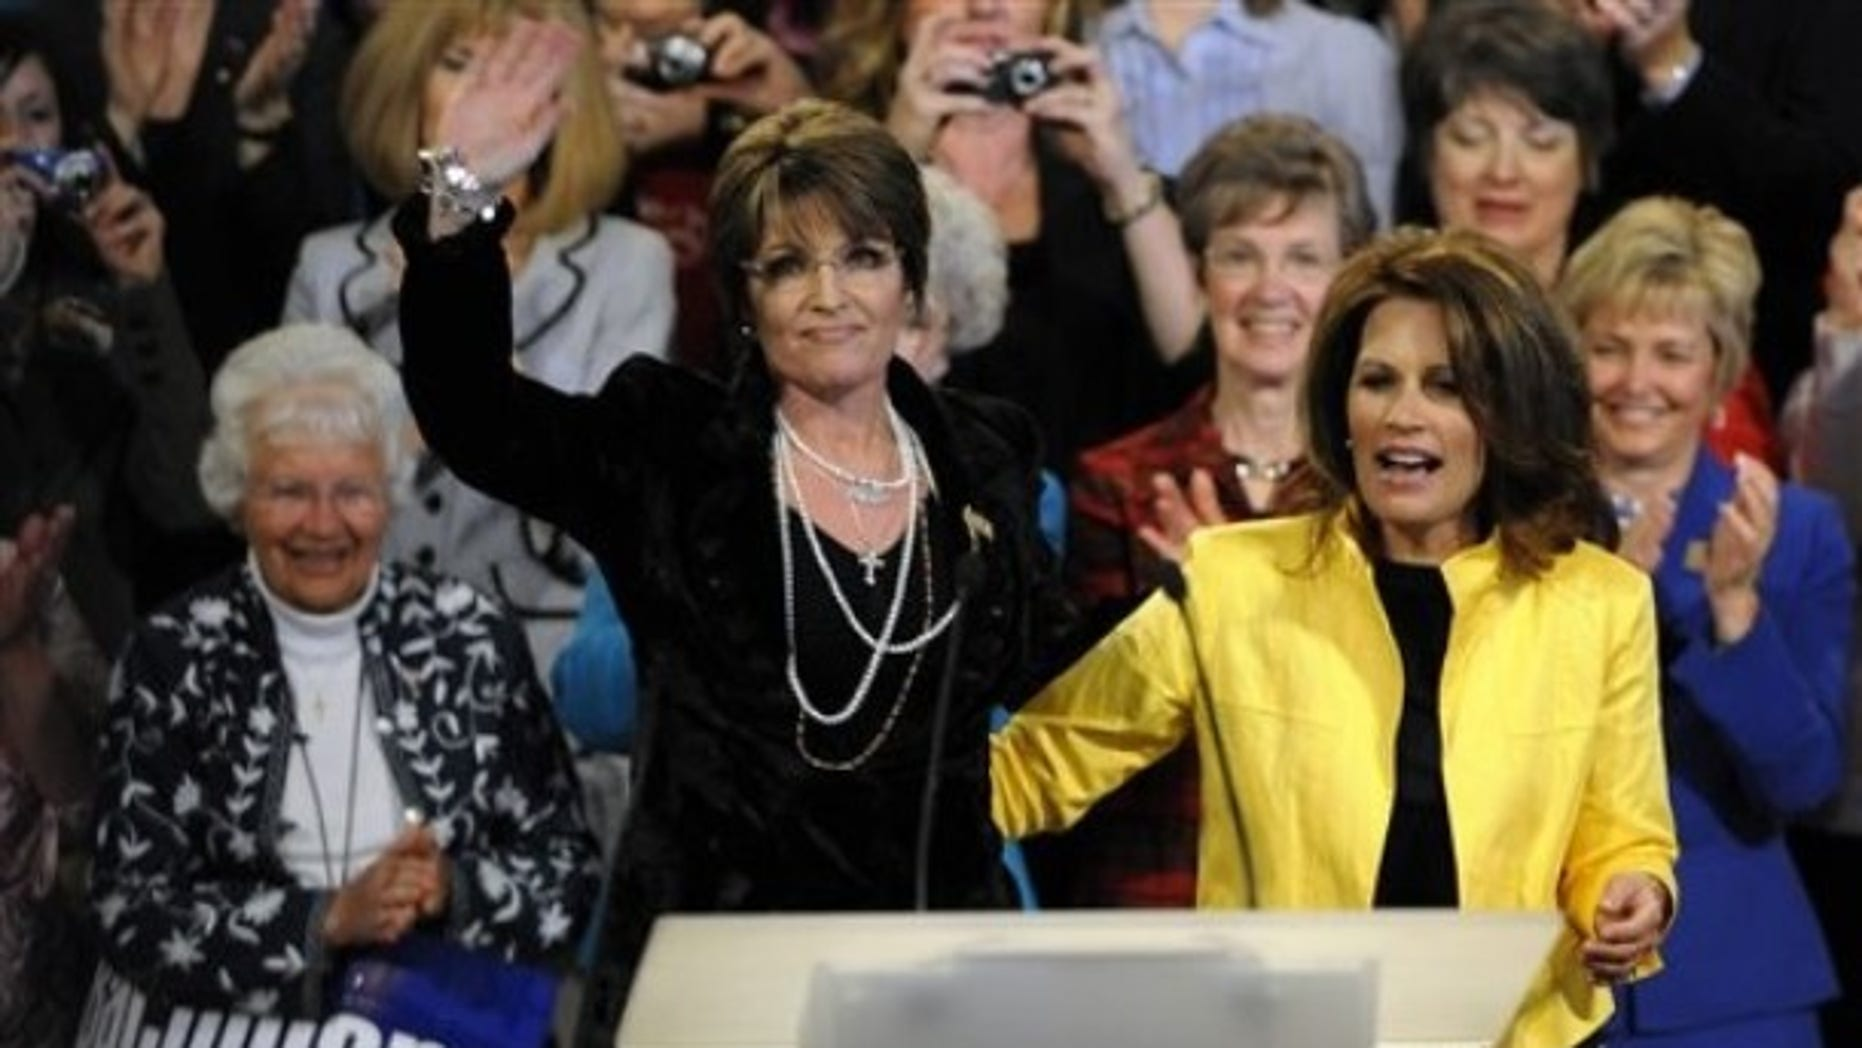 Wednesday: Sarah Palin, left, waves to the rally crowd after a campaign appearance for Rep. Michele Bachmann, R-Minn., in Minneapolis. (AP Photo)